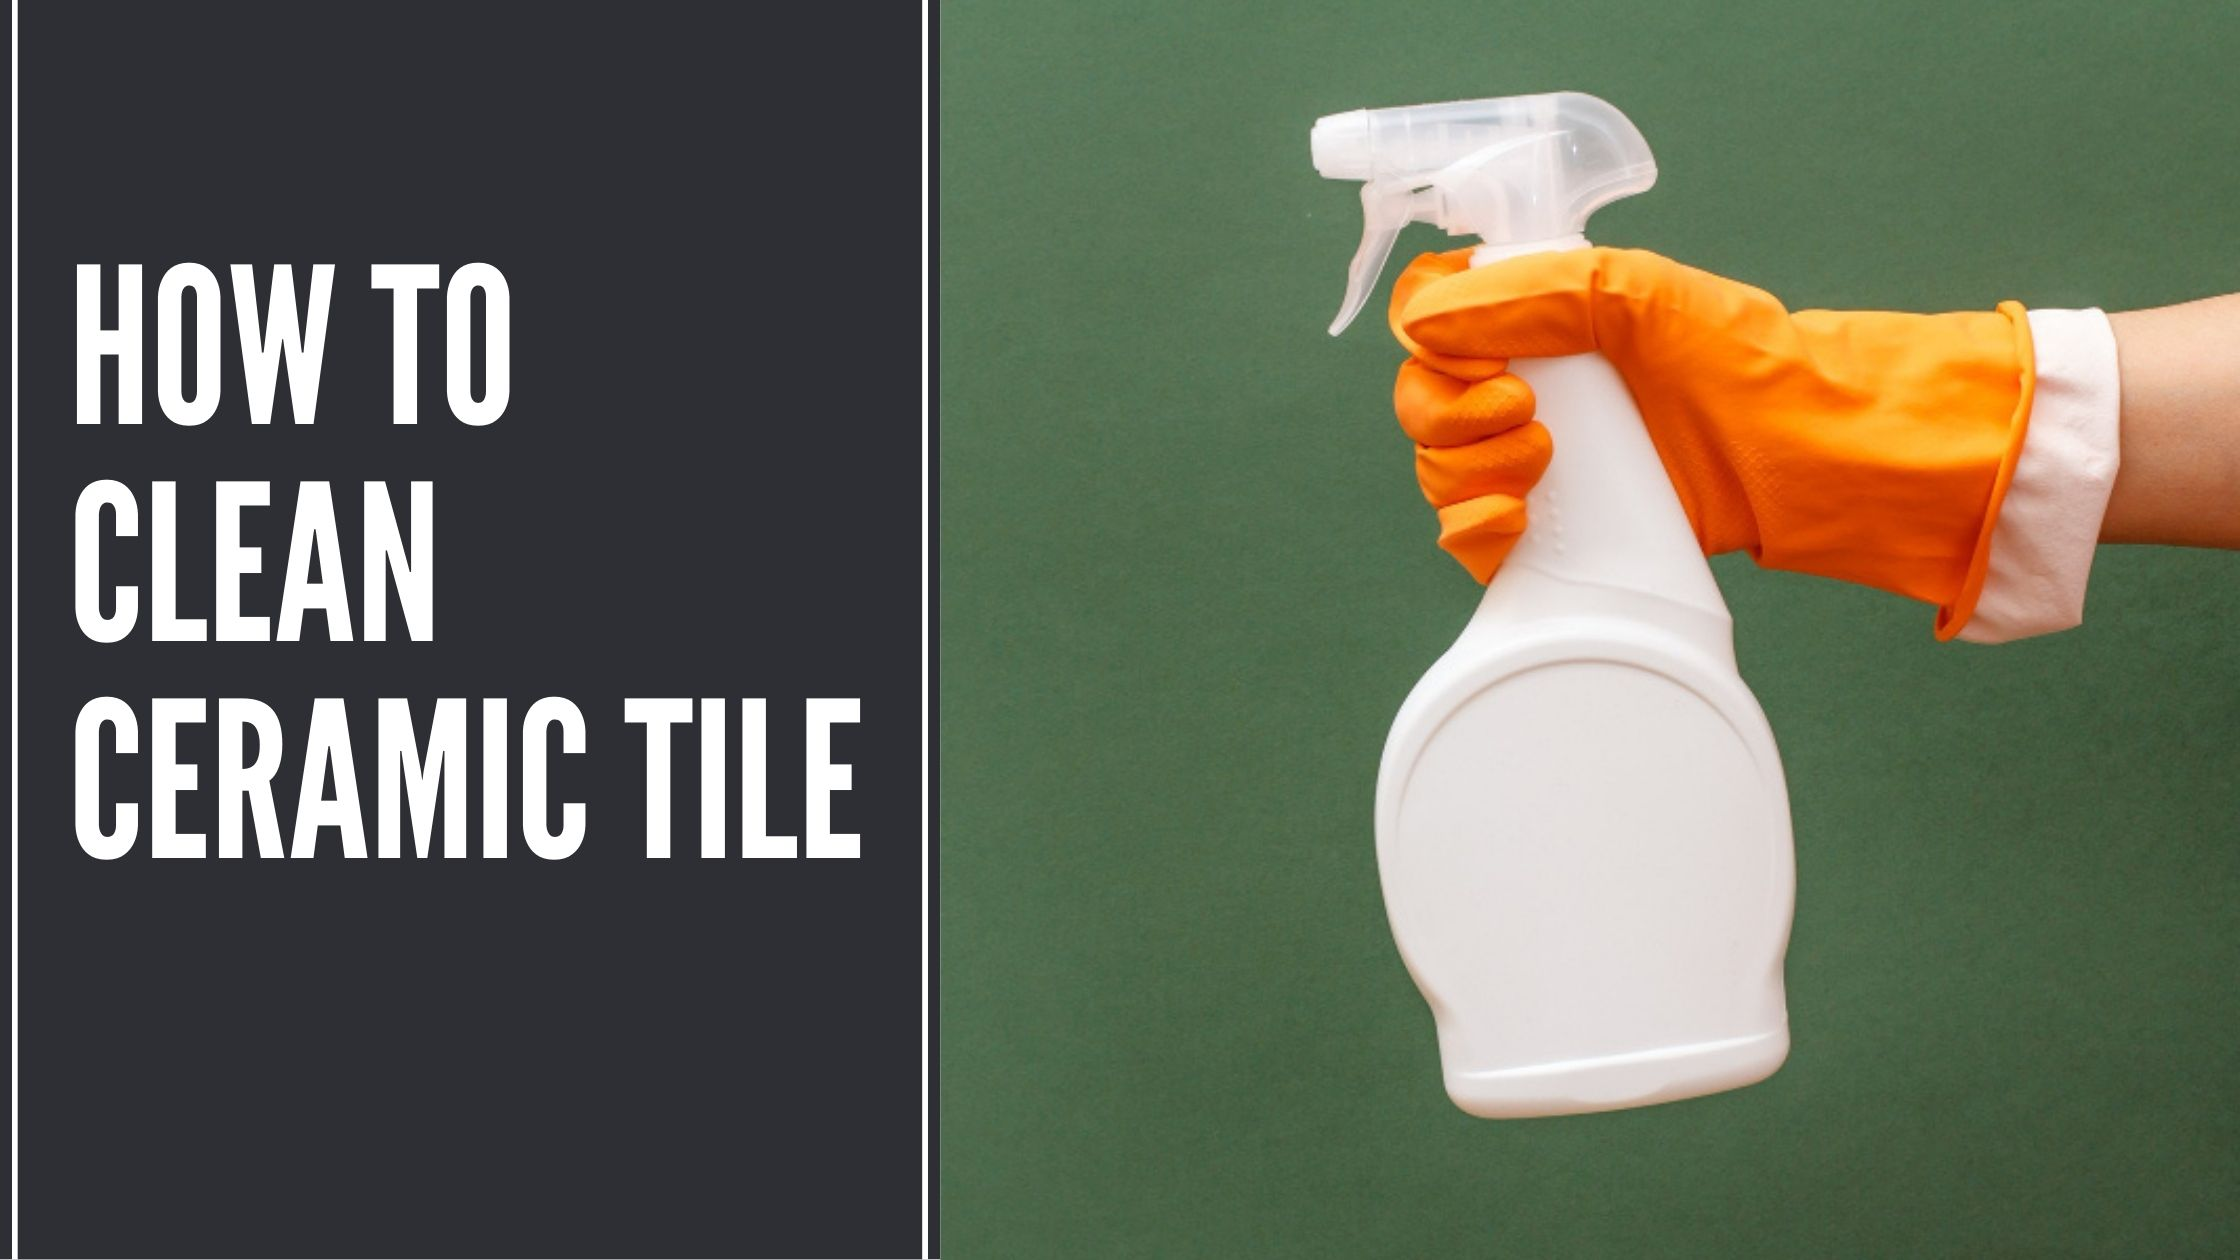 How to Clean Ceramic Tile